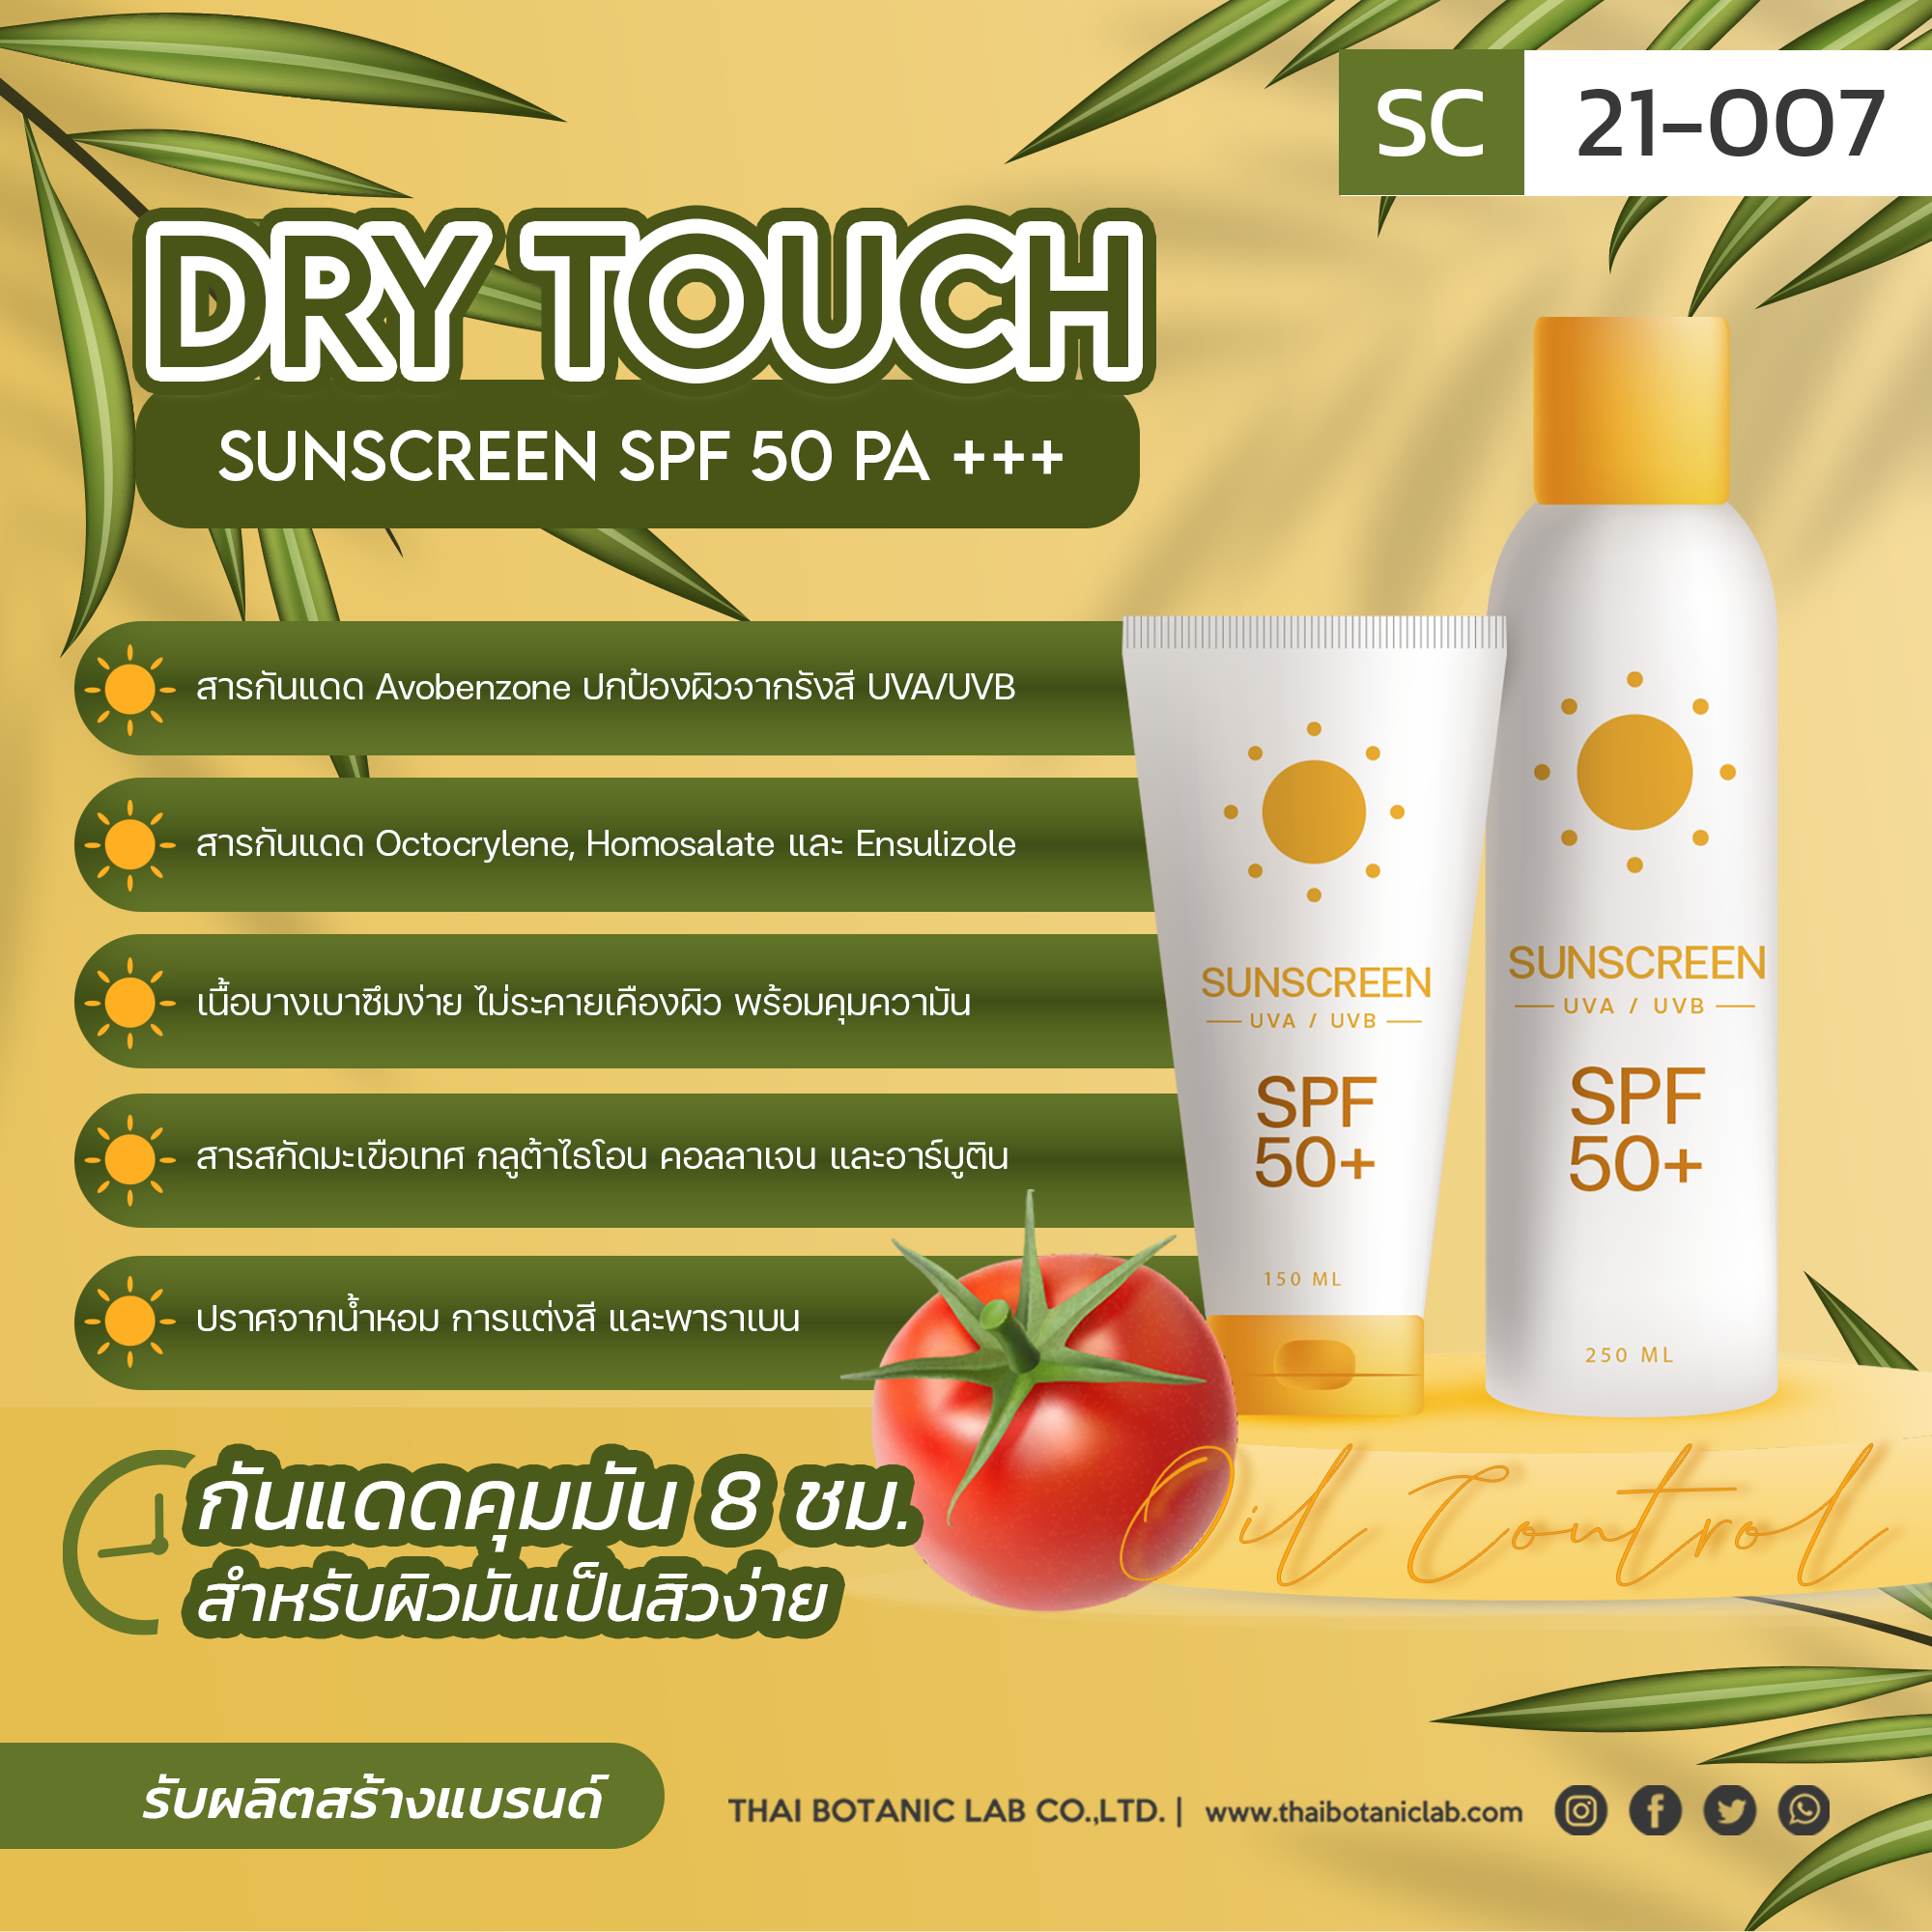 Dry Touch Sunscreen SPF 50 PA +++